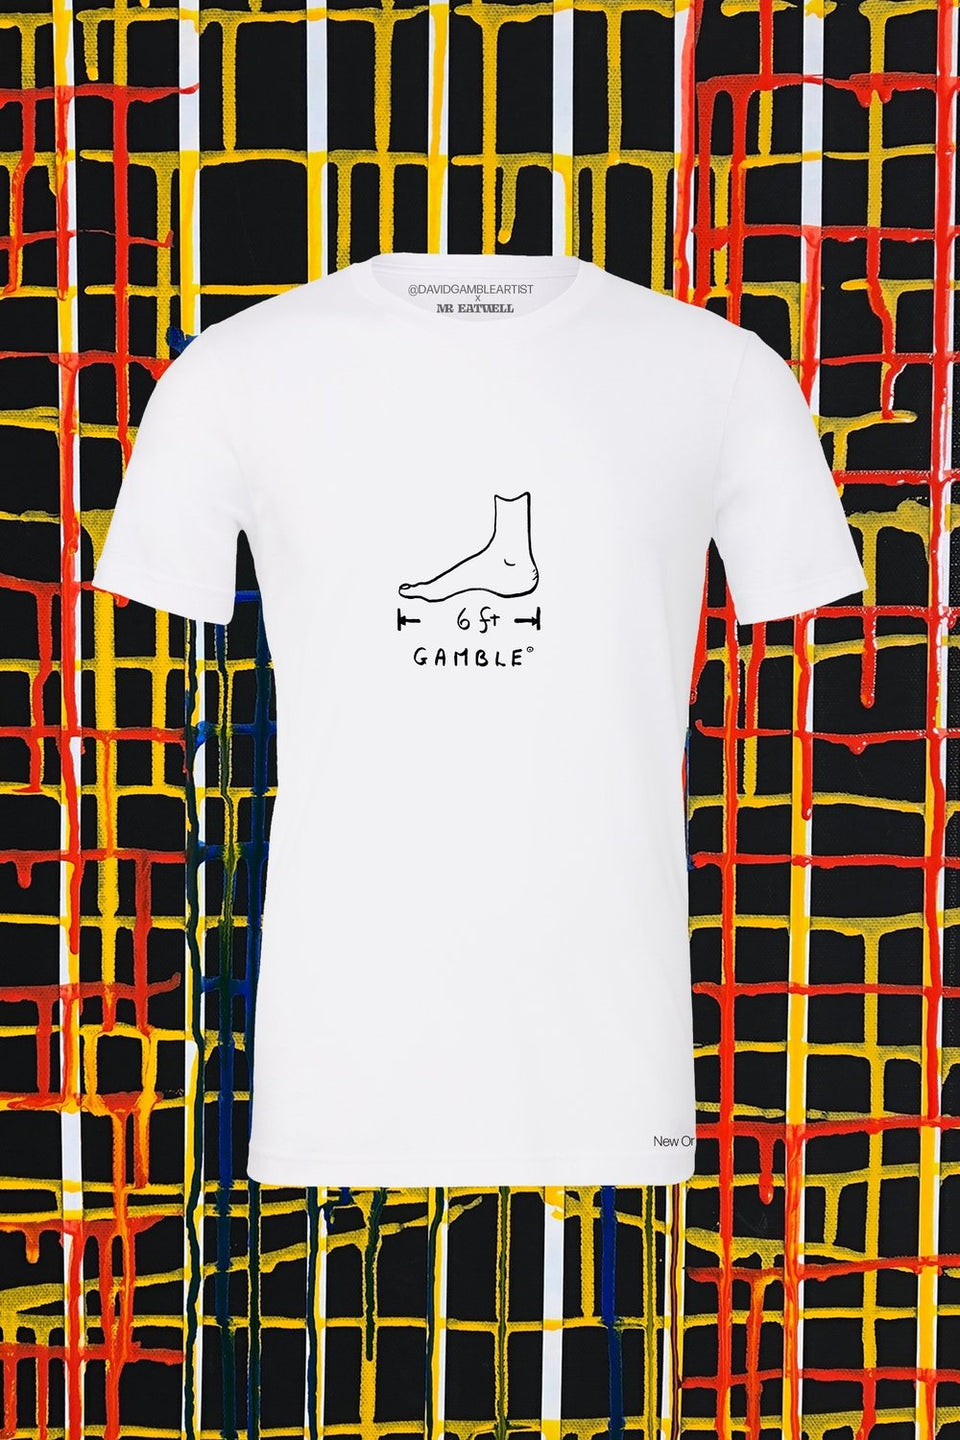 David Gamble x MR EATWELL Big Foot T-Shirt - MR EATWELL